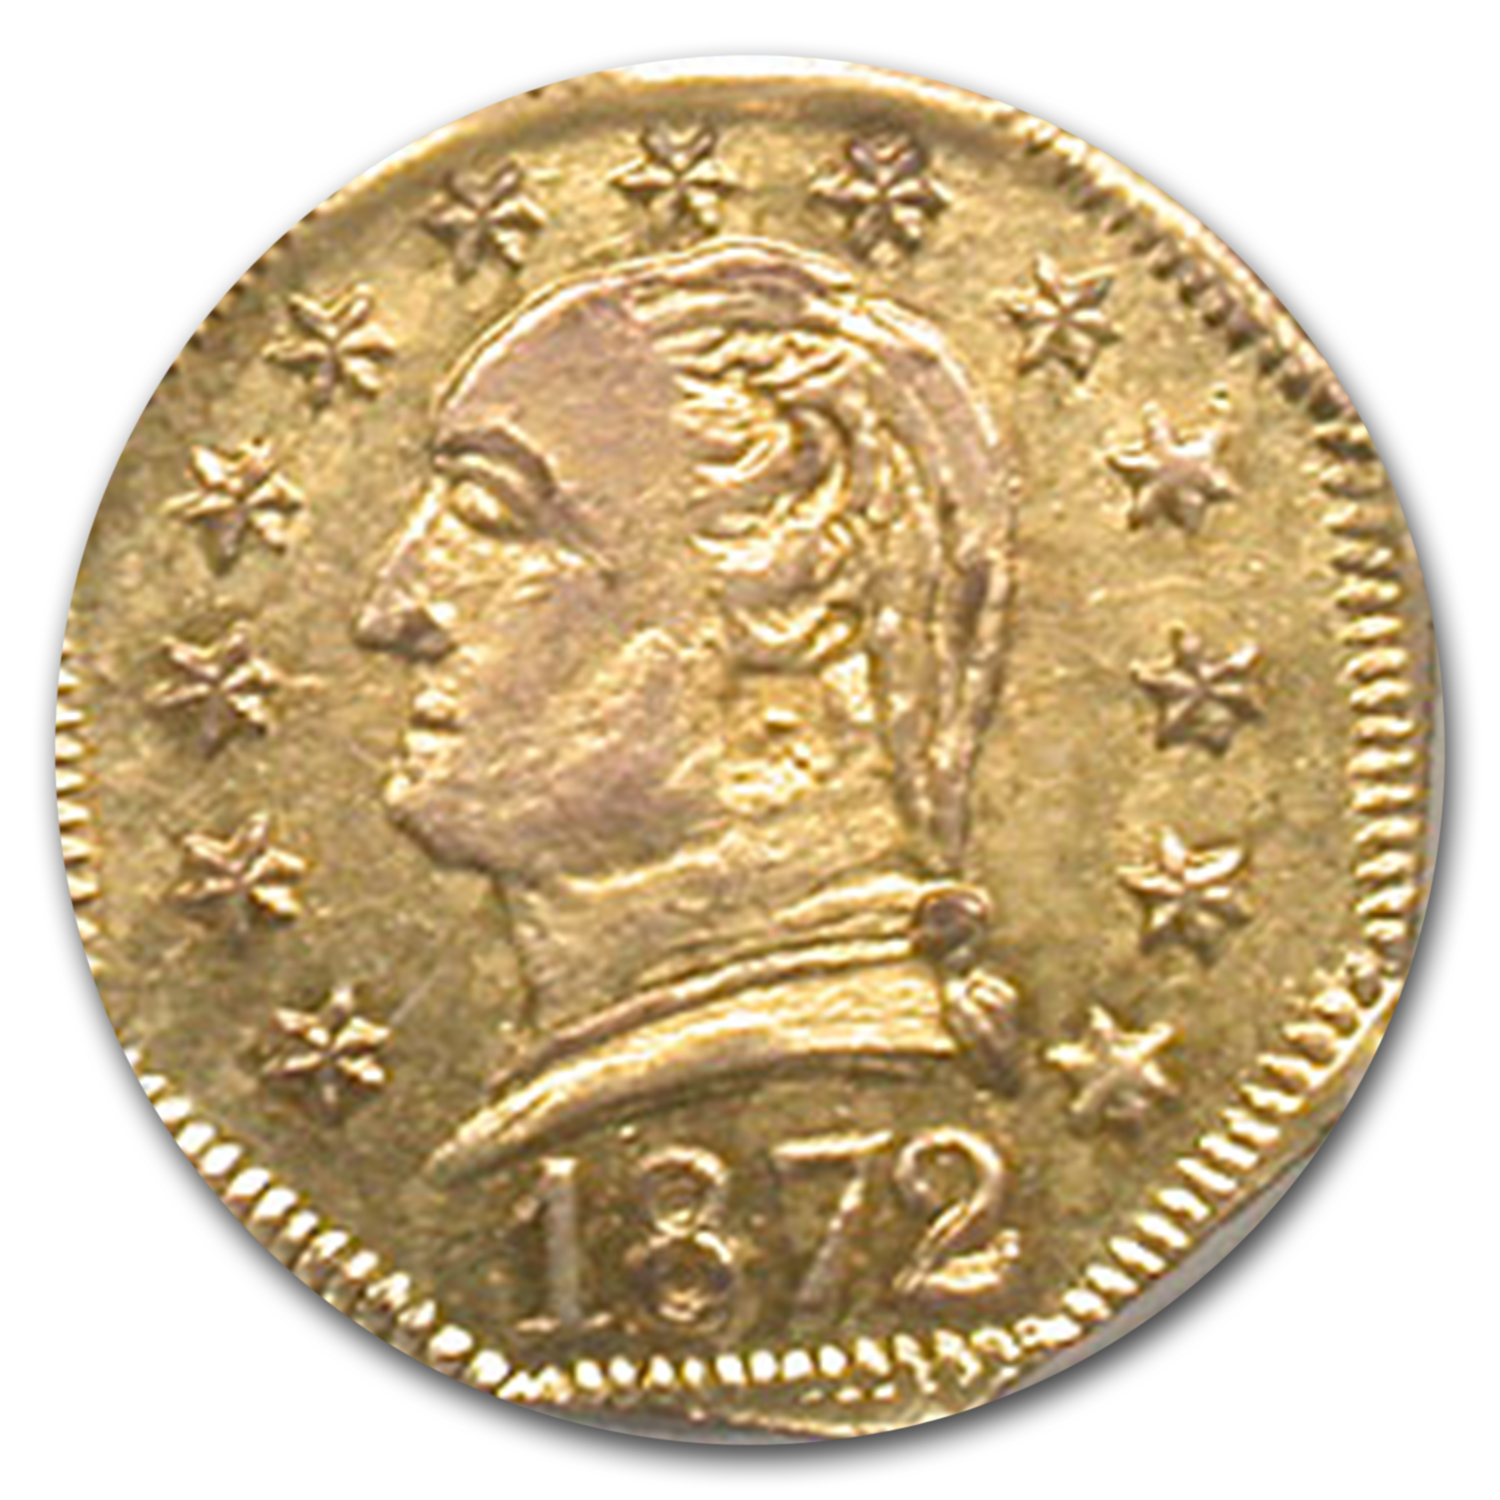 1872 25c Washington Head Fractional Gold MS-62 NGC (BG-723)